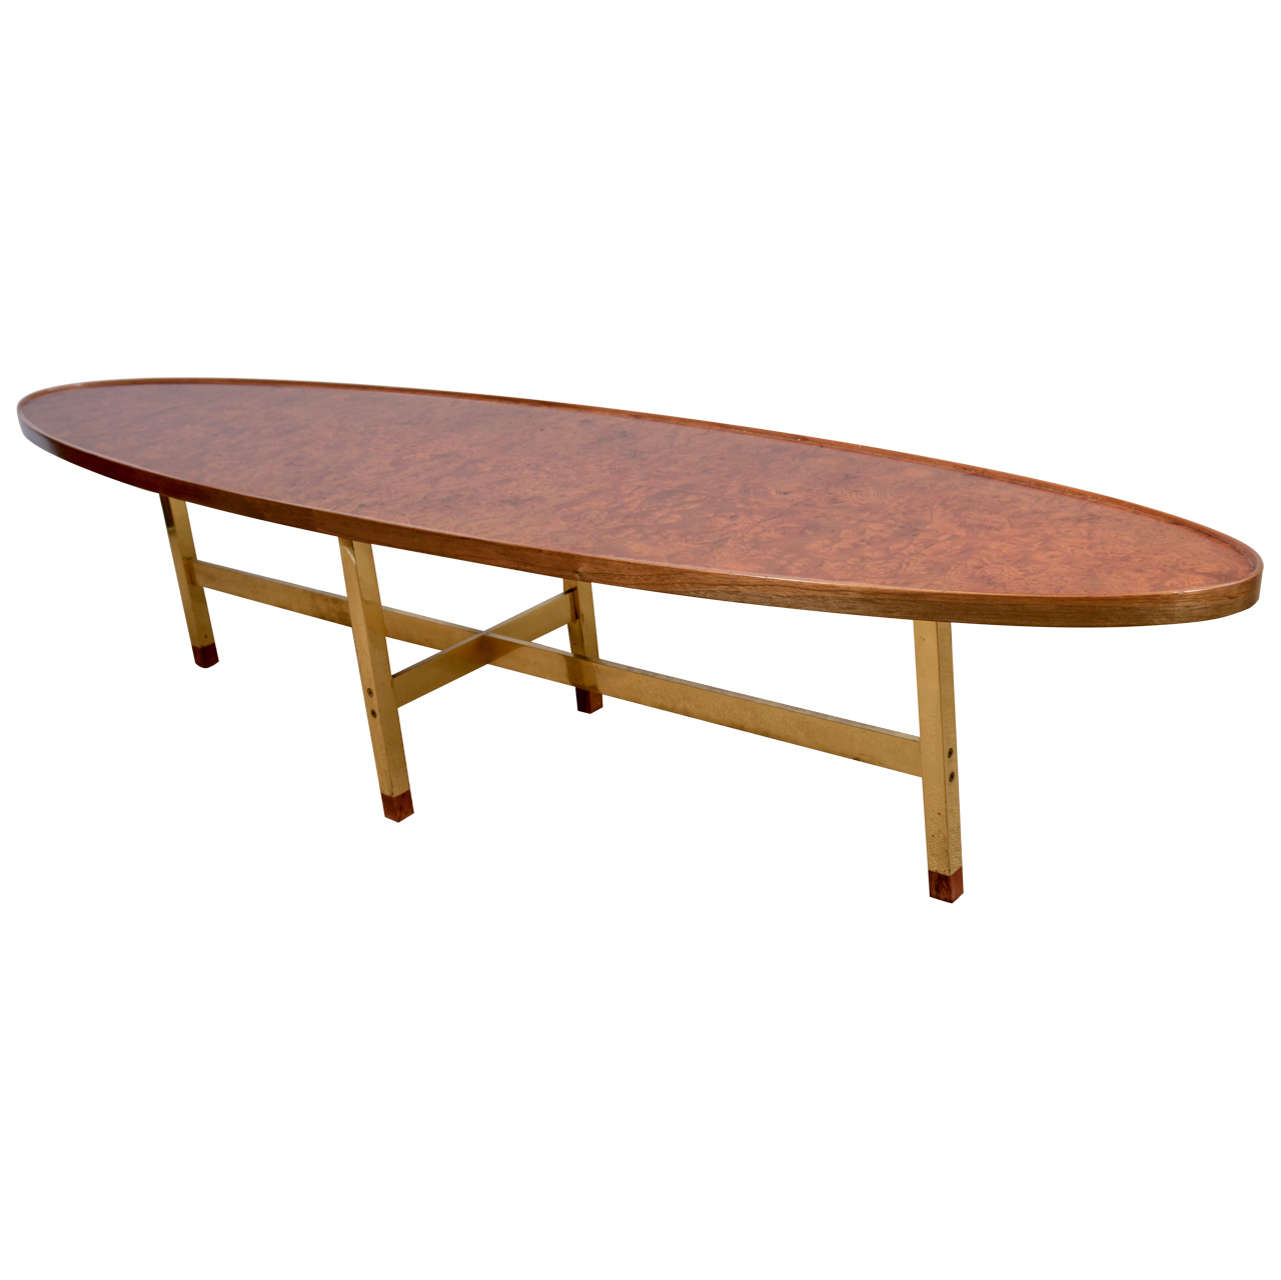 An Ed Wormley For Dunbar Elm Surfboard Coffee Table